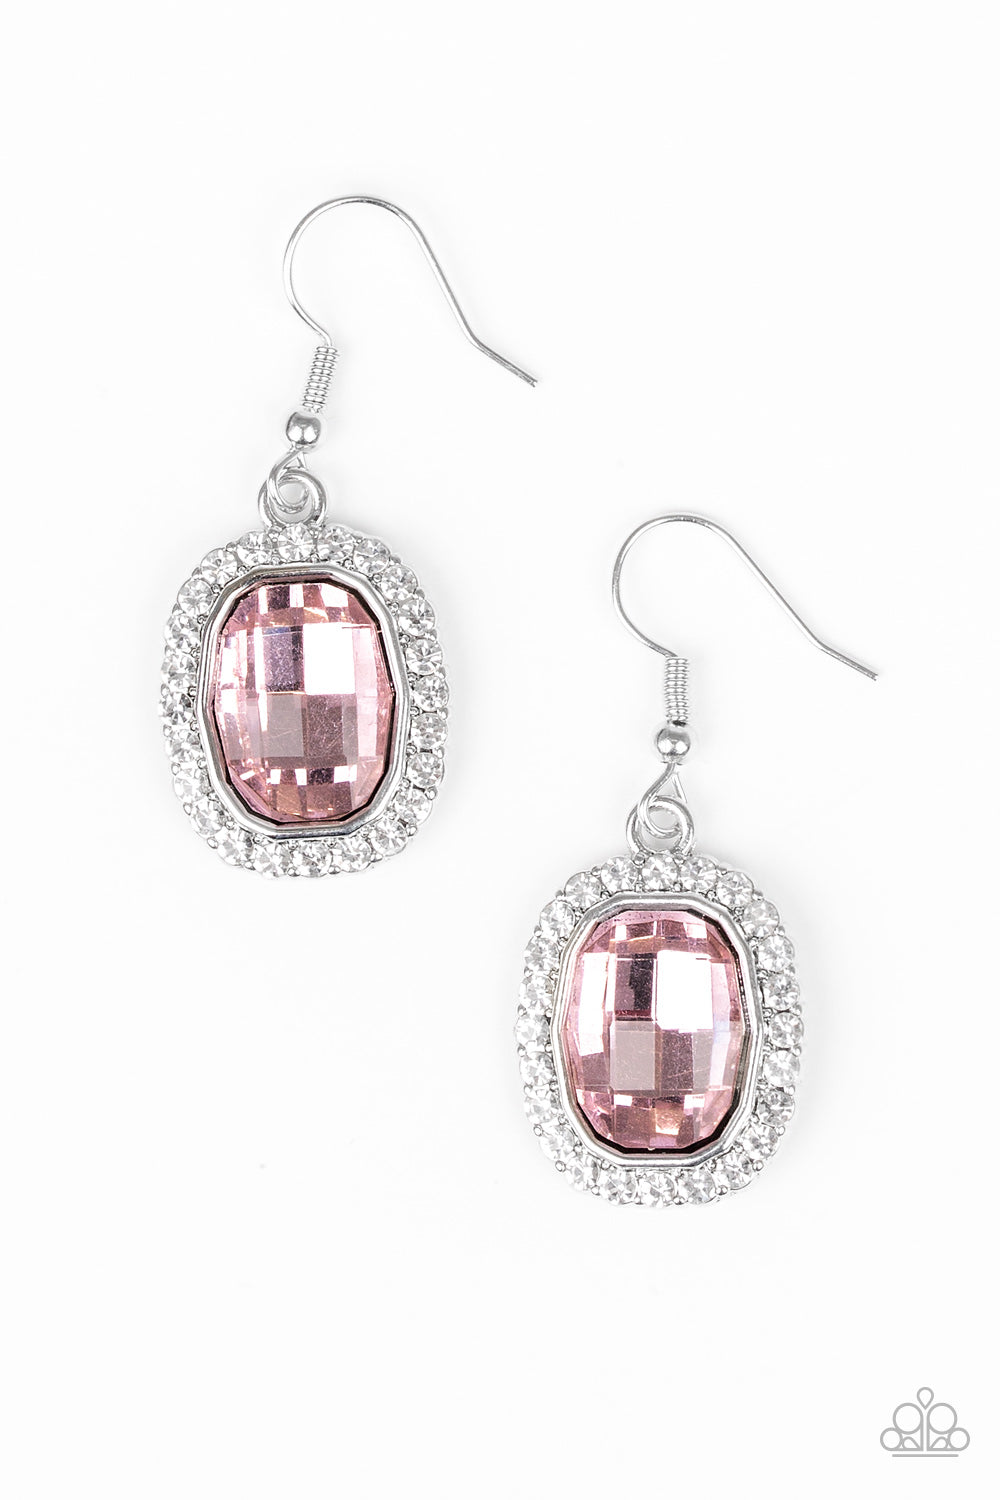 five-dollar-jewelry-the-modern-monroe-pink-earrings-paparazzi-accessories